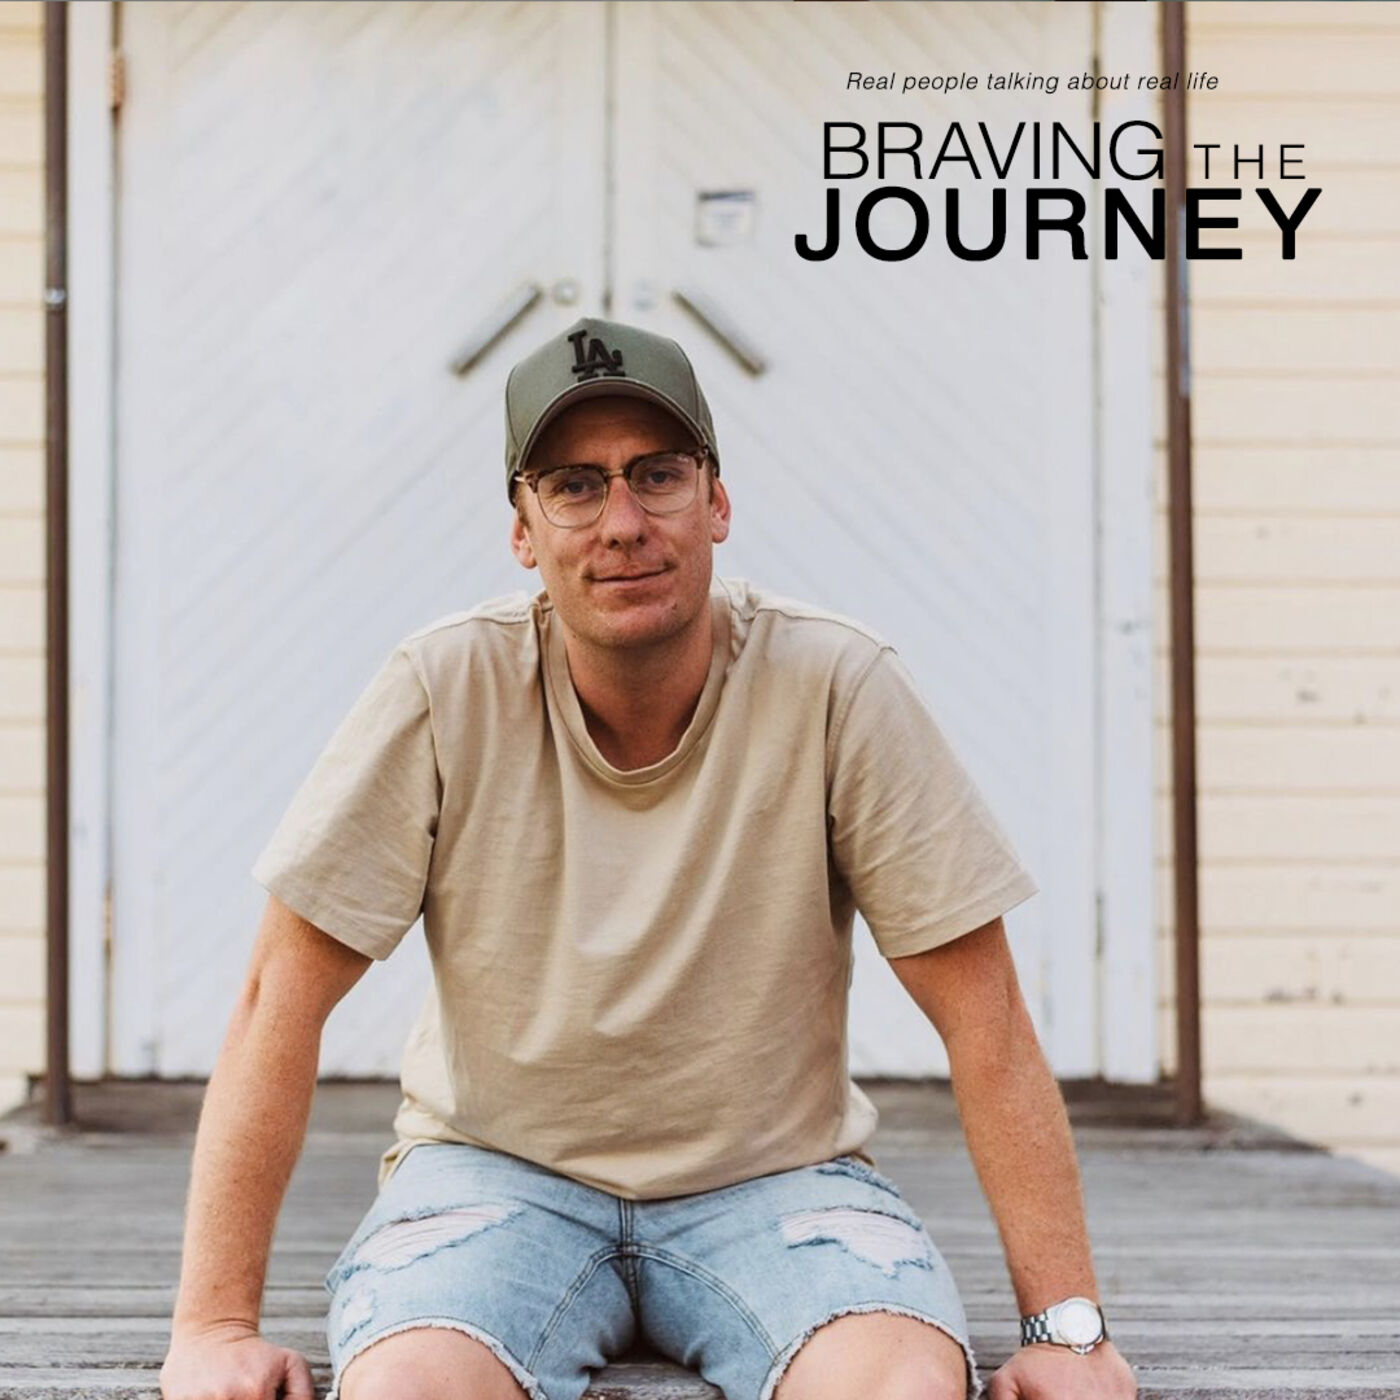 The Journey of discovering our feelings with Andrew Wild